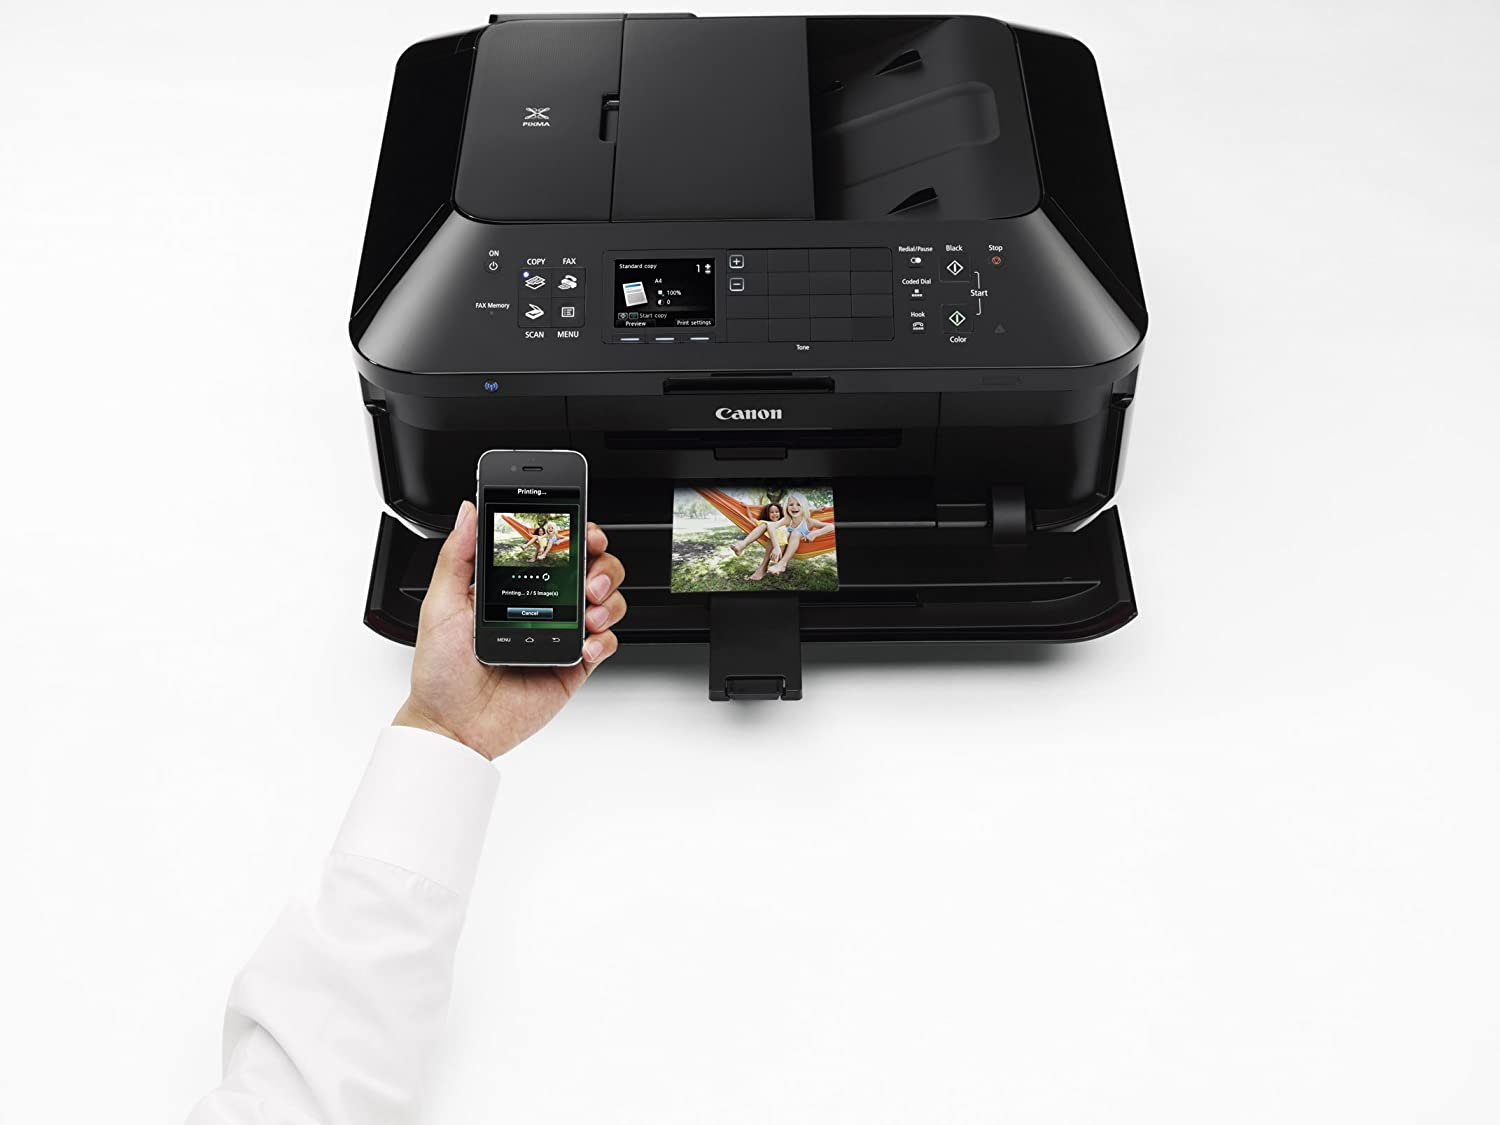 amazoncom canon office and business mx922 all in one printer wireless and mobile printing electronics amazoncom stills office